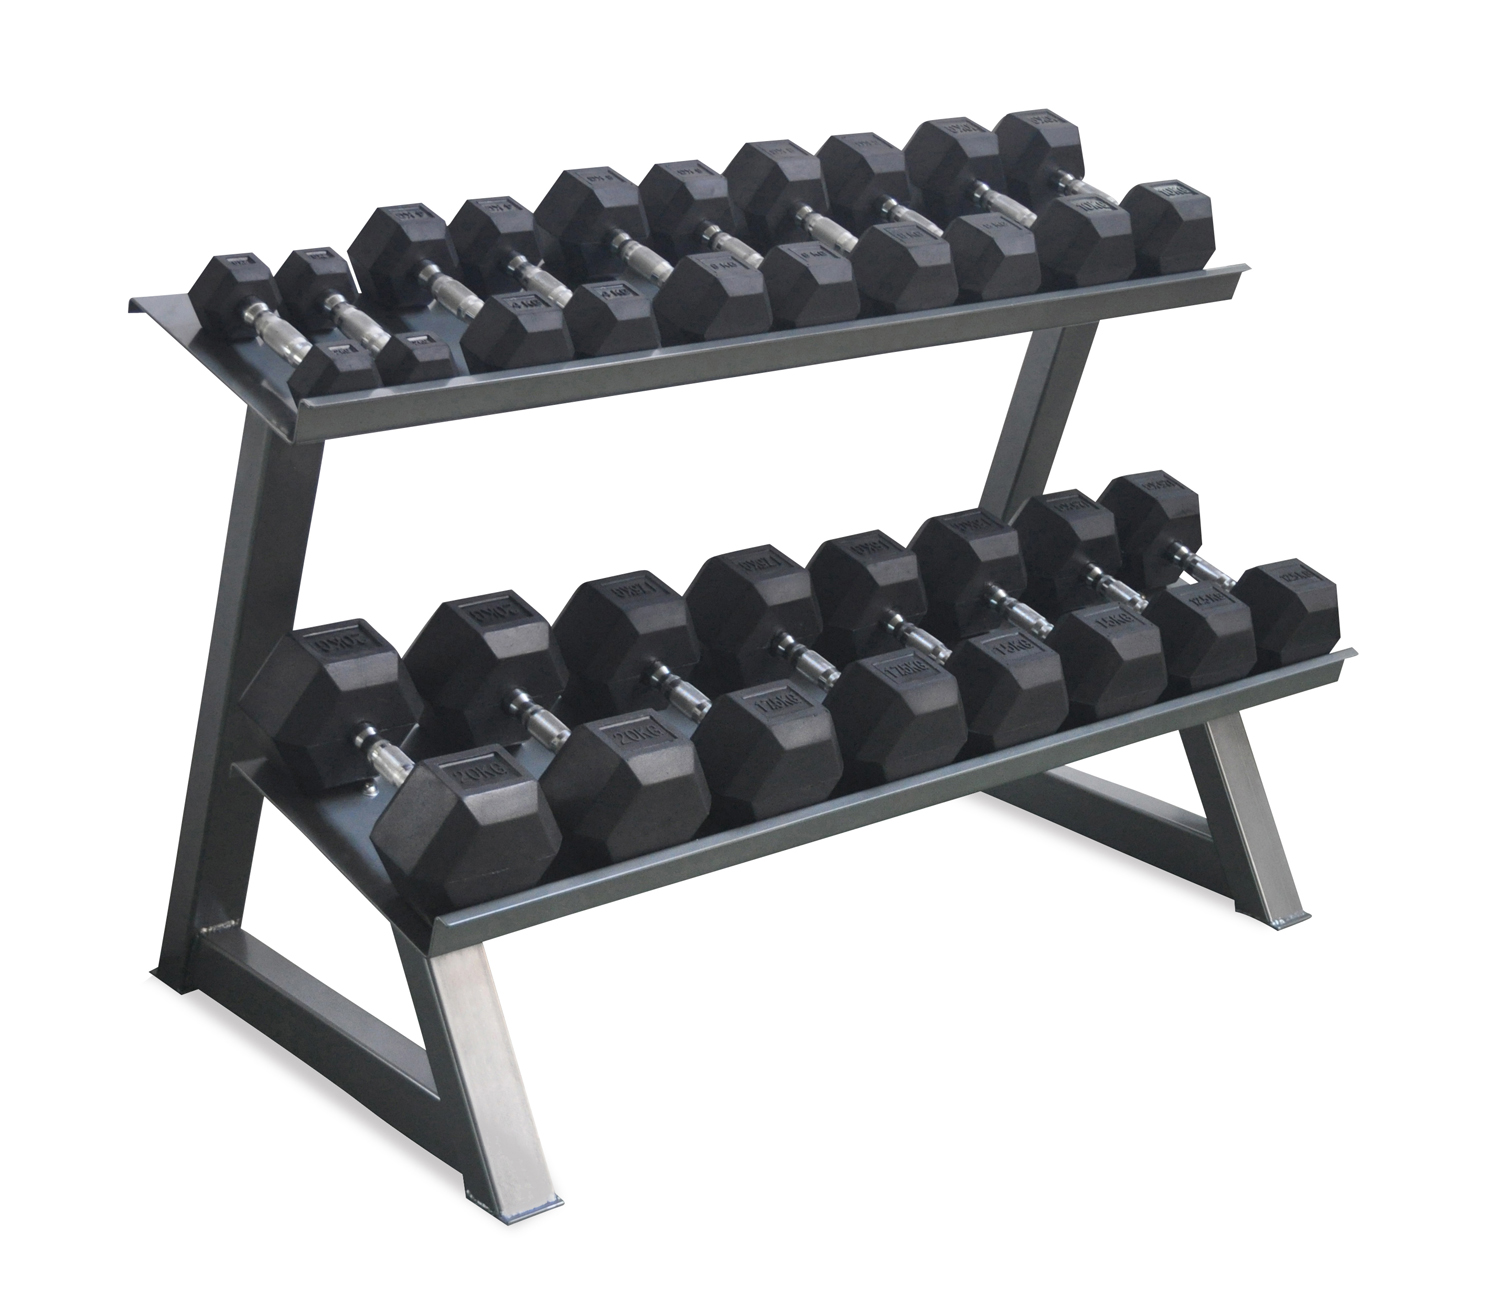 Dumbbell Rack 2 Tier Multipurpose Commercial